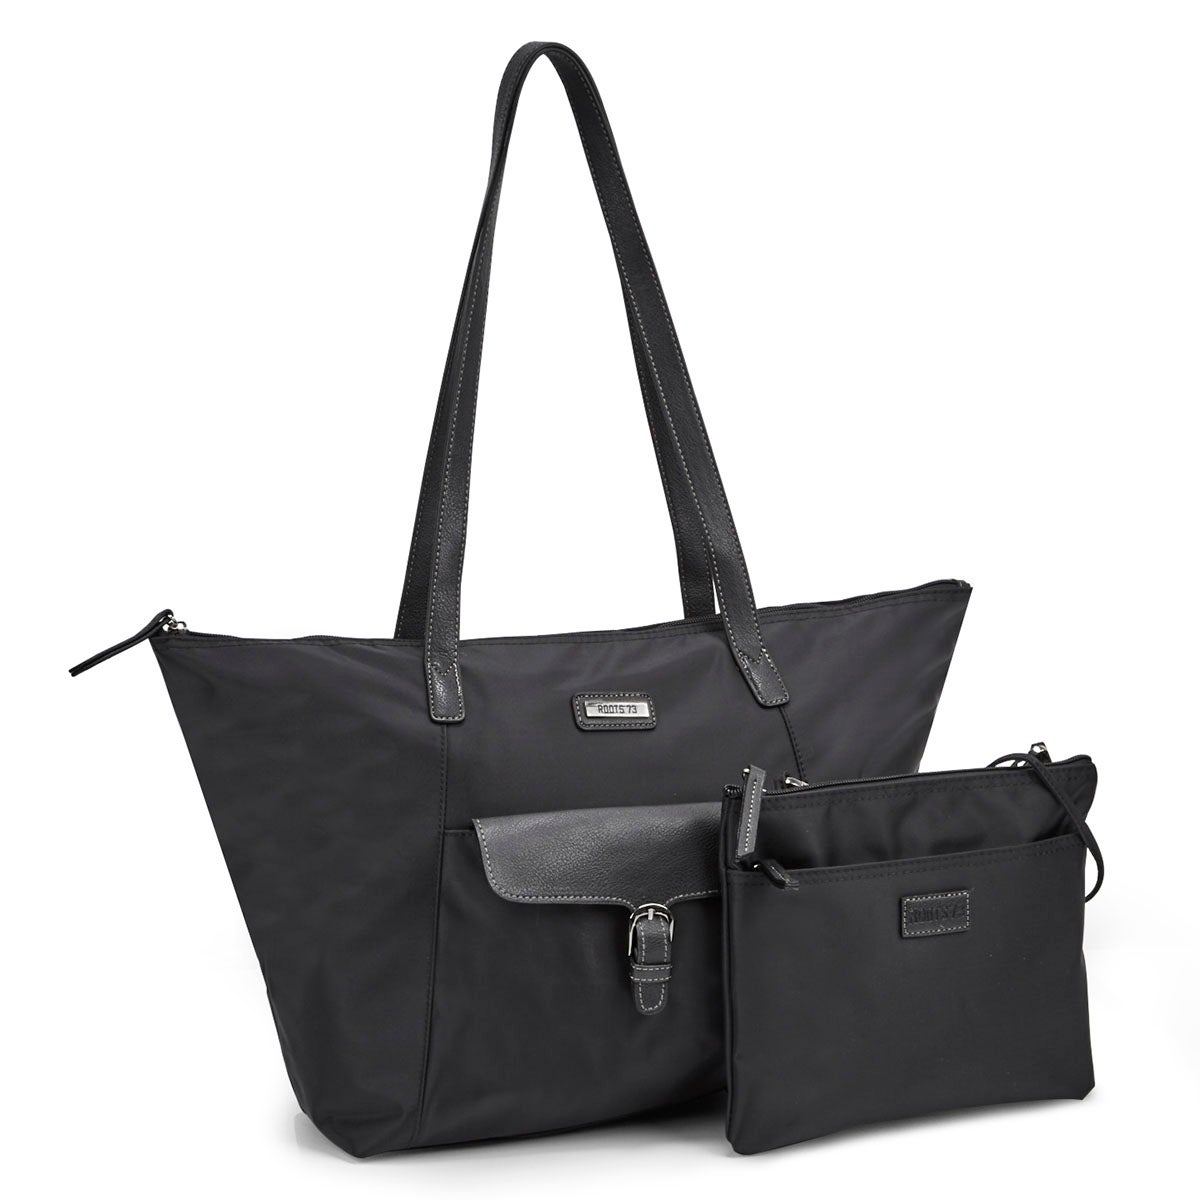 Women's ROOTS73 R4866 black 2 in 1 tote bag